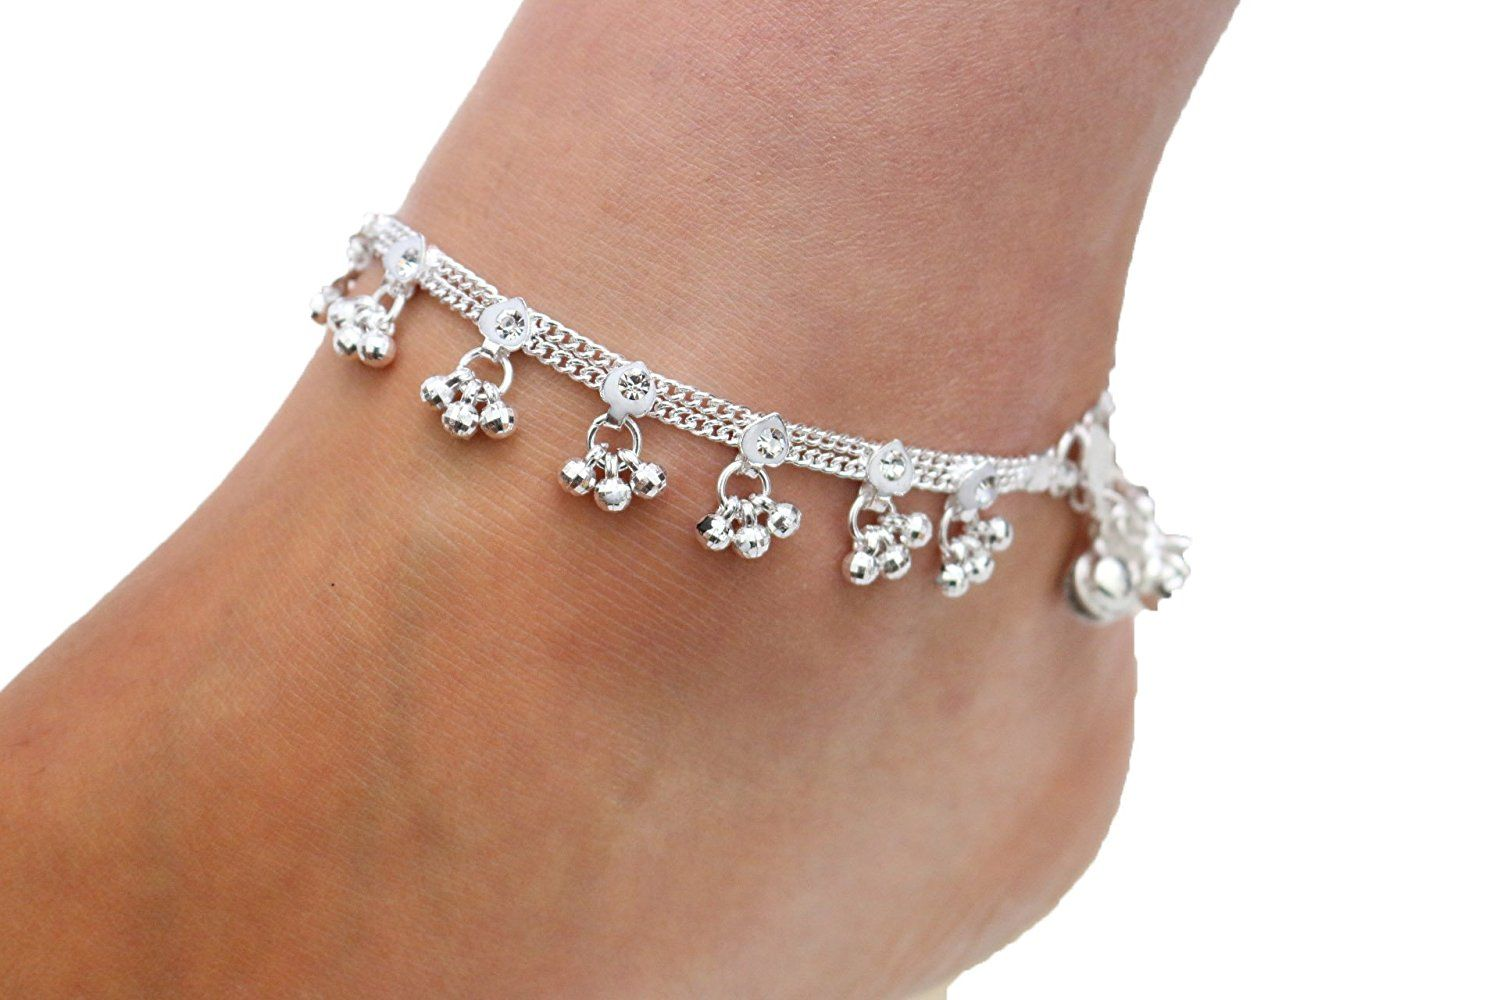 Pair Indian Star Anklet Payal Silver Tone Bracelets Ankle Chain Fashion Jewelry High Quality Goods Fashion Jewelry